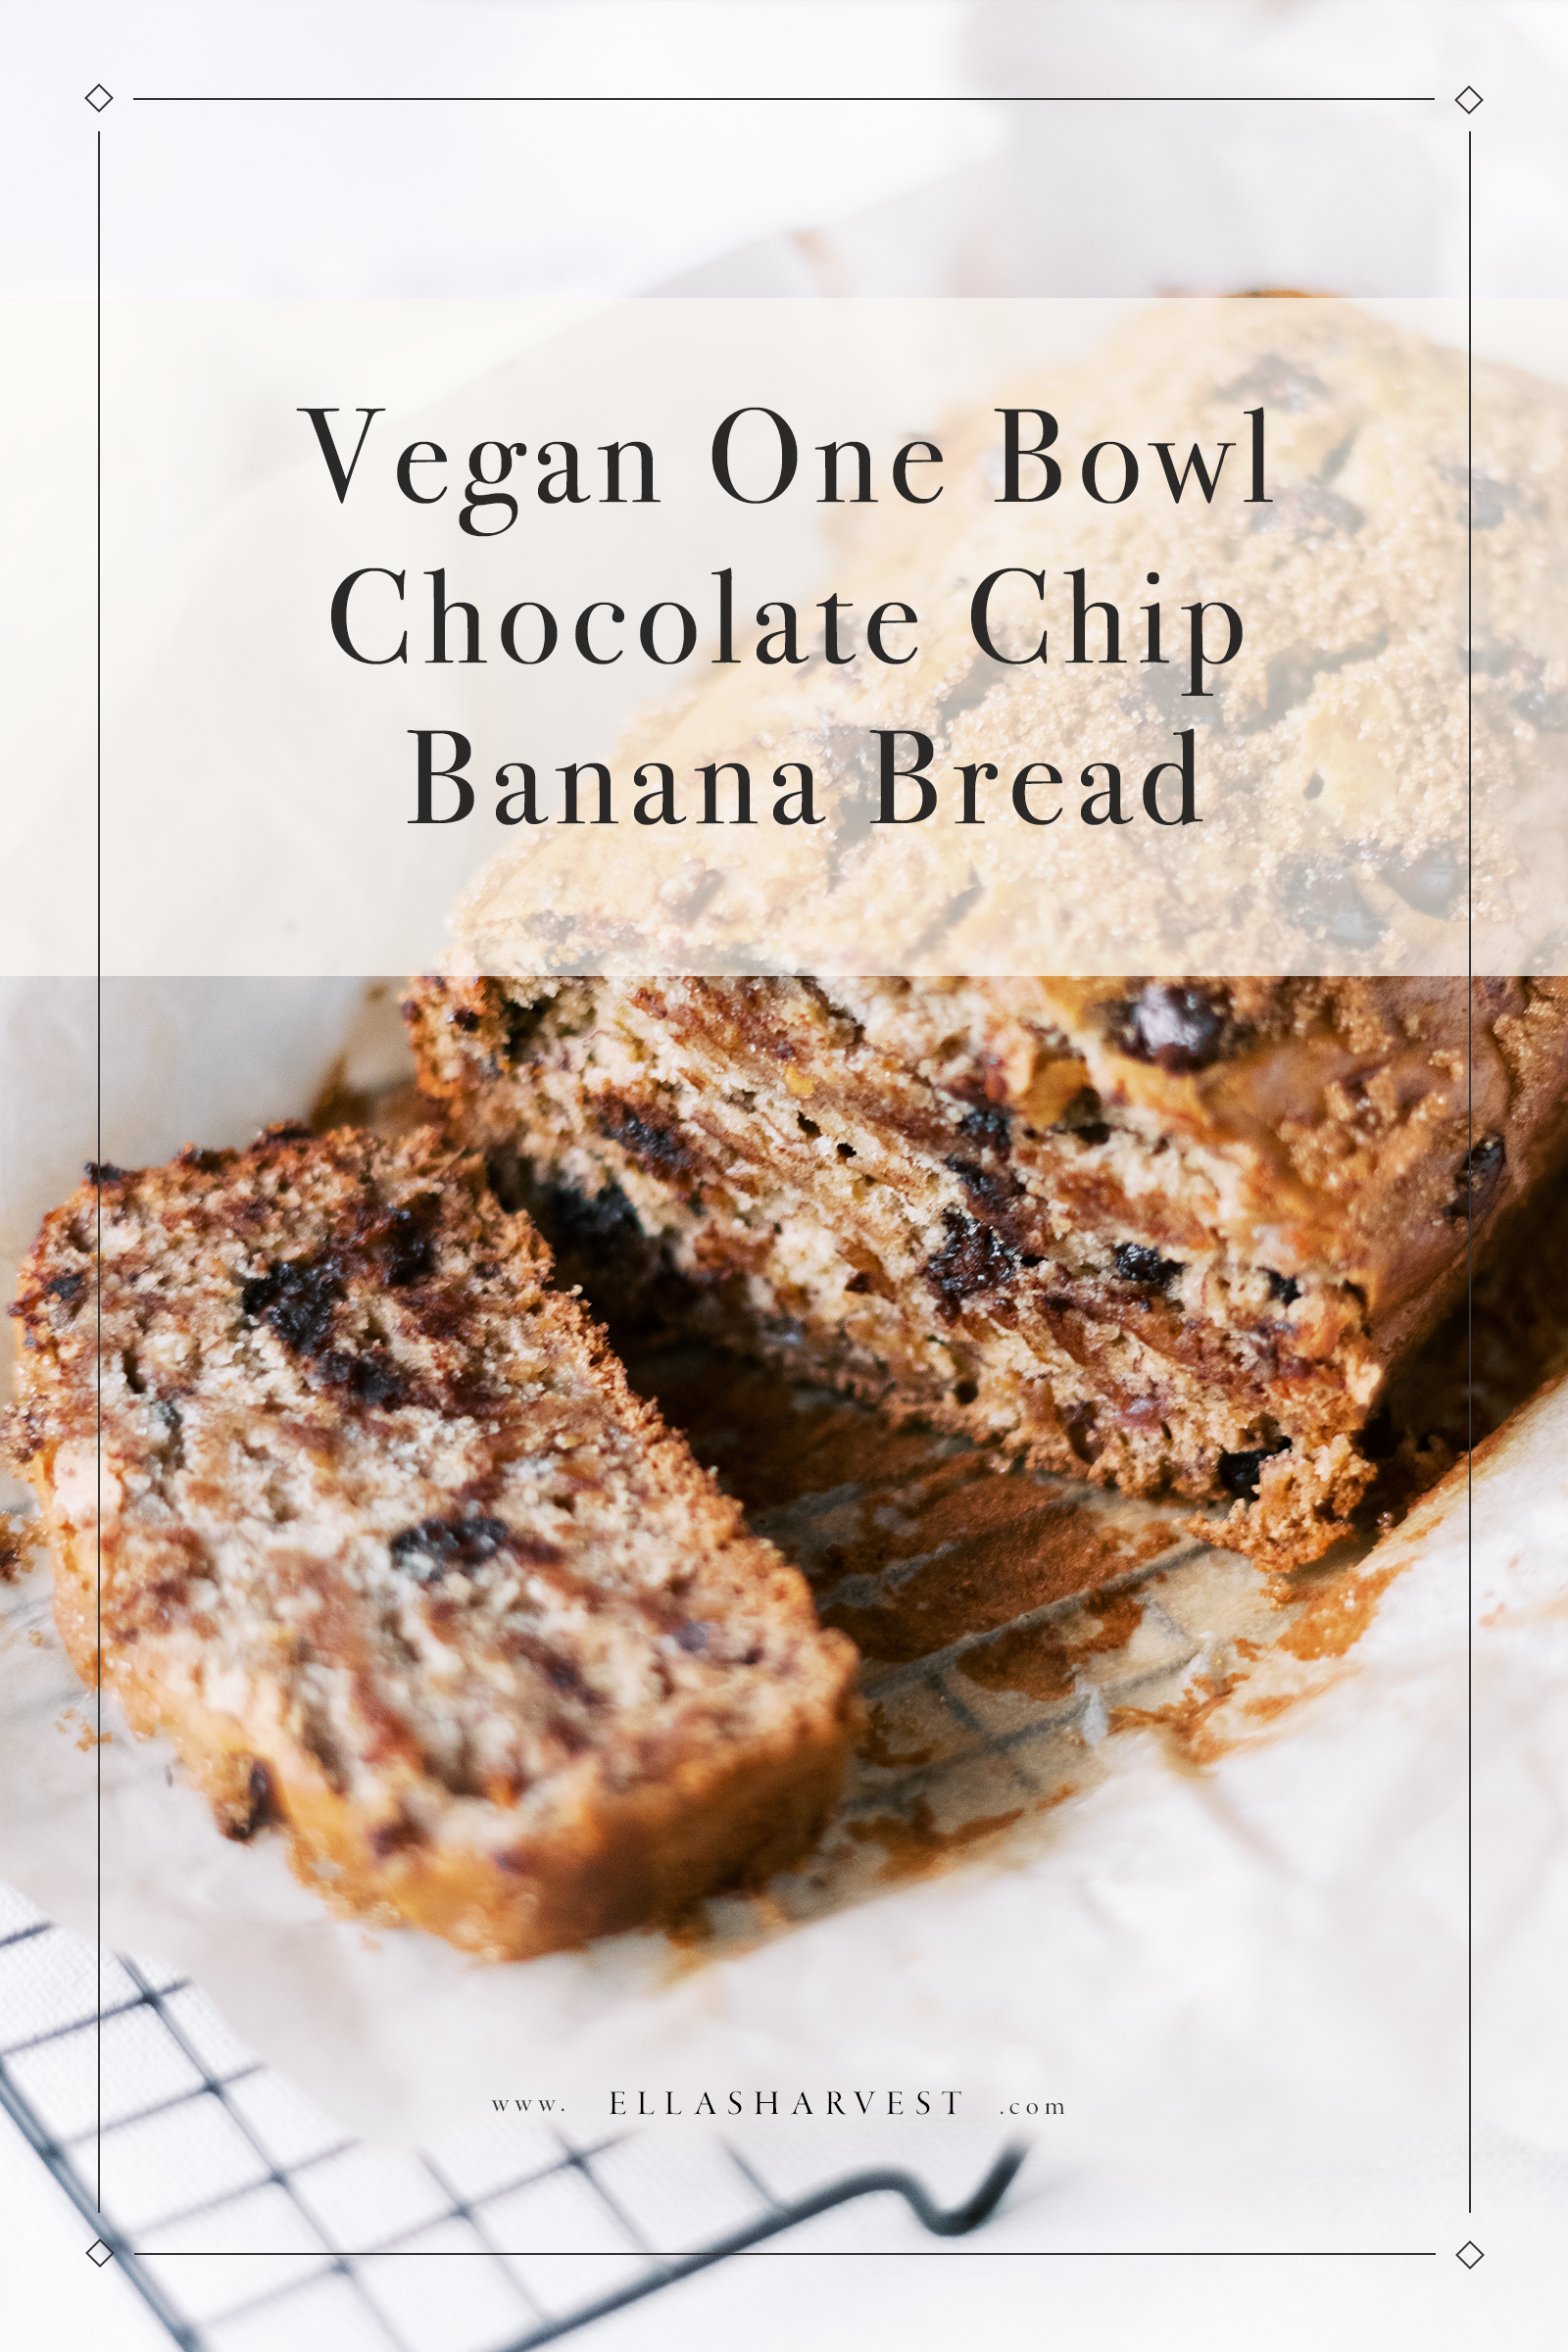 Vegan One Bowl Chocolate Chip Banana Bread - Ella's Harvest — Vegan Recipes, Gardening Tips and Blogger Education